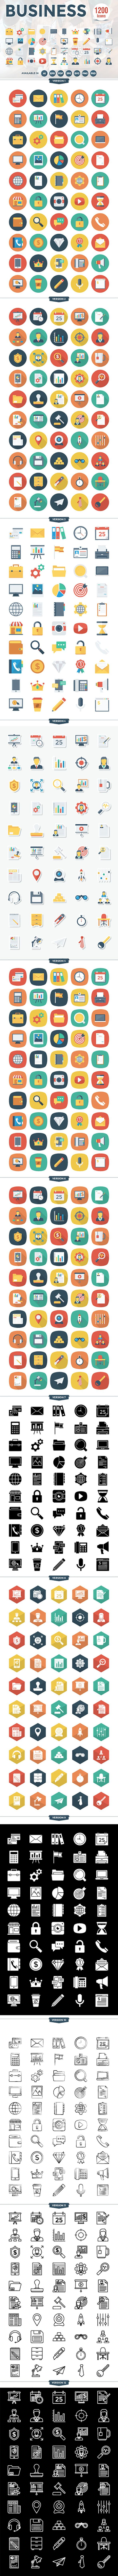 Download from here Set of 1200 flat design icons for business The set can be used for several purposes like